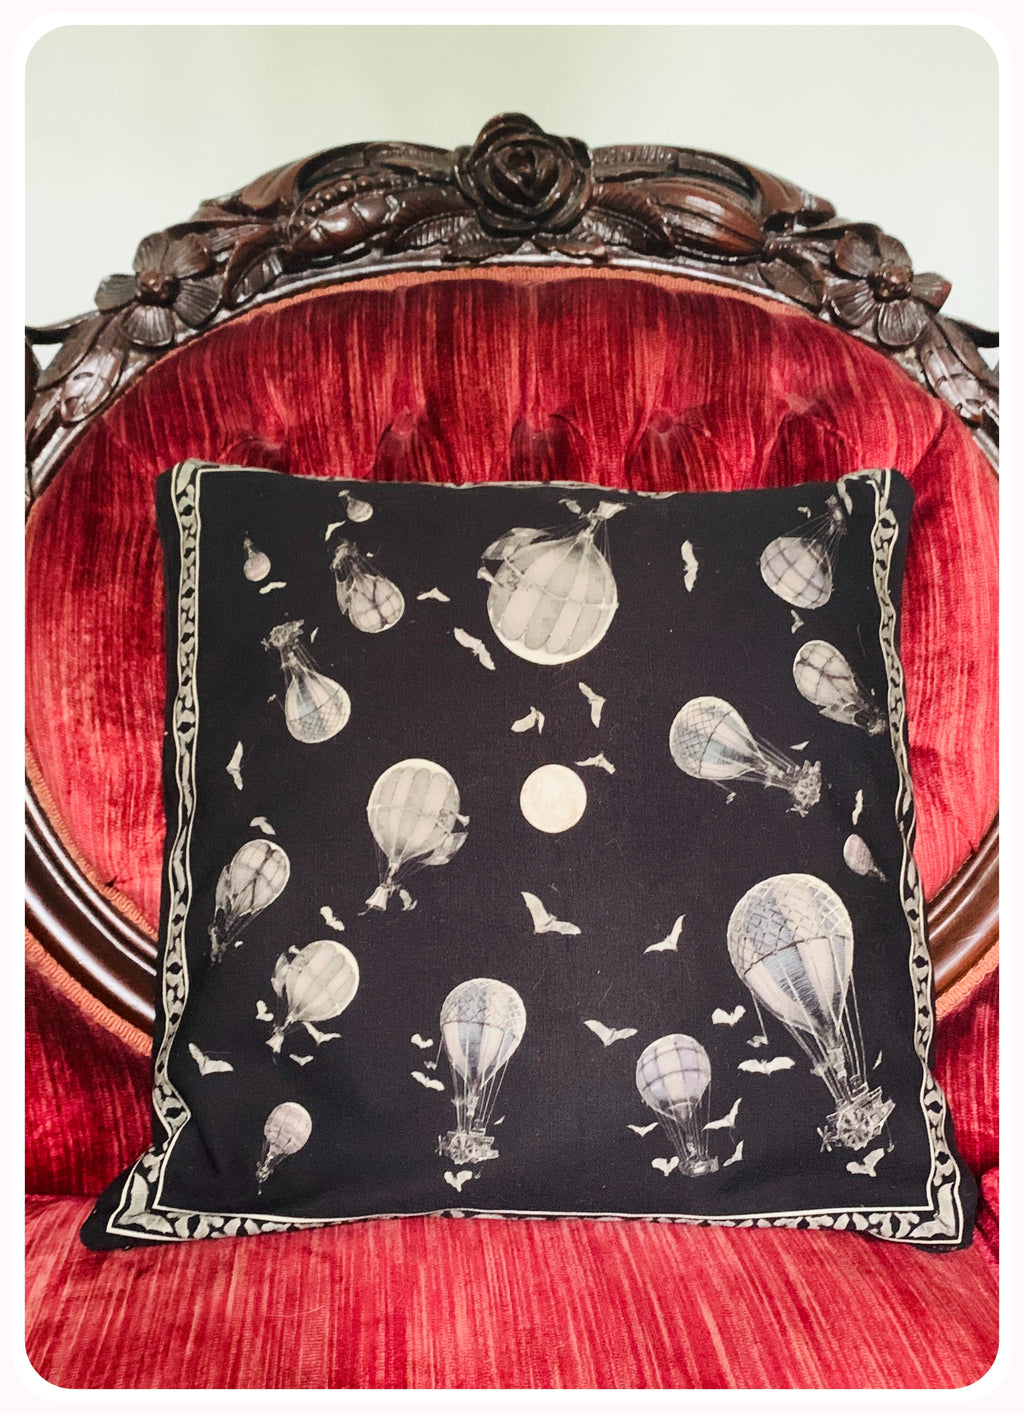 Full Moon Bats & Balloons Canvas Pillow